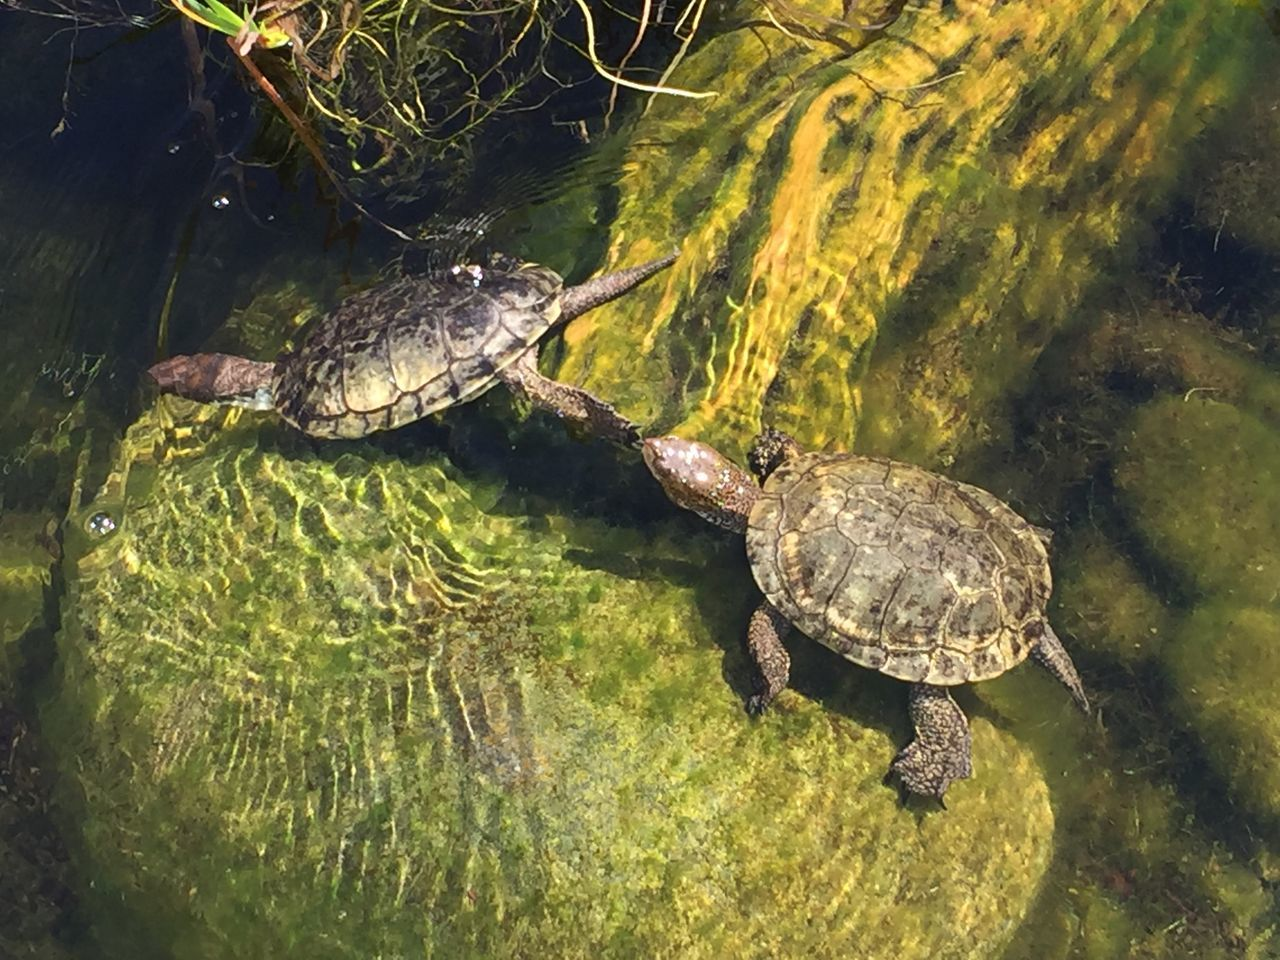 reptile, turtle, one animal, animals in the wild, water, animal themes, swimming, sea turtle, high angle view, animal wildlife, nature, sea life, tortoise, day, waterfront, no people, tortoise shell, outdoors, alligator, undersea